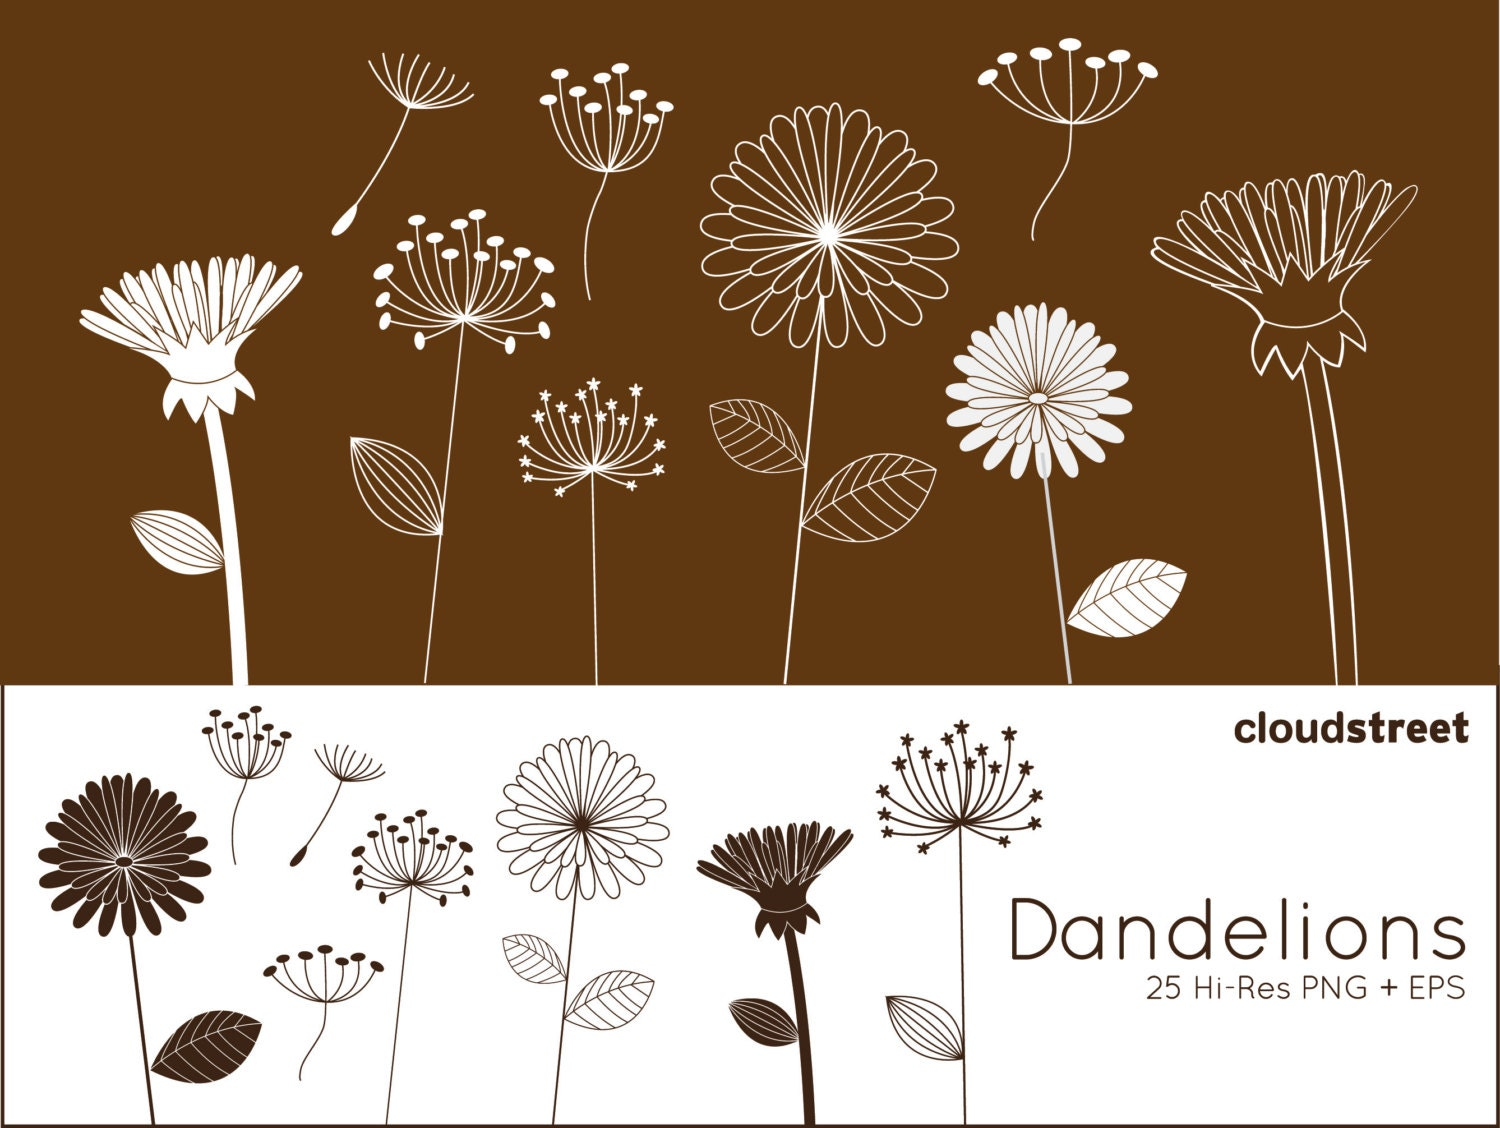 Clip Art Dandelion Clip Art dandelion clip art etsy buy 2 get 1 free dandelions clipart for personal and commercial use whimsical flower vector graphics